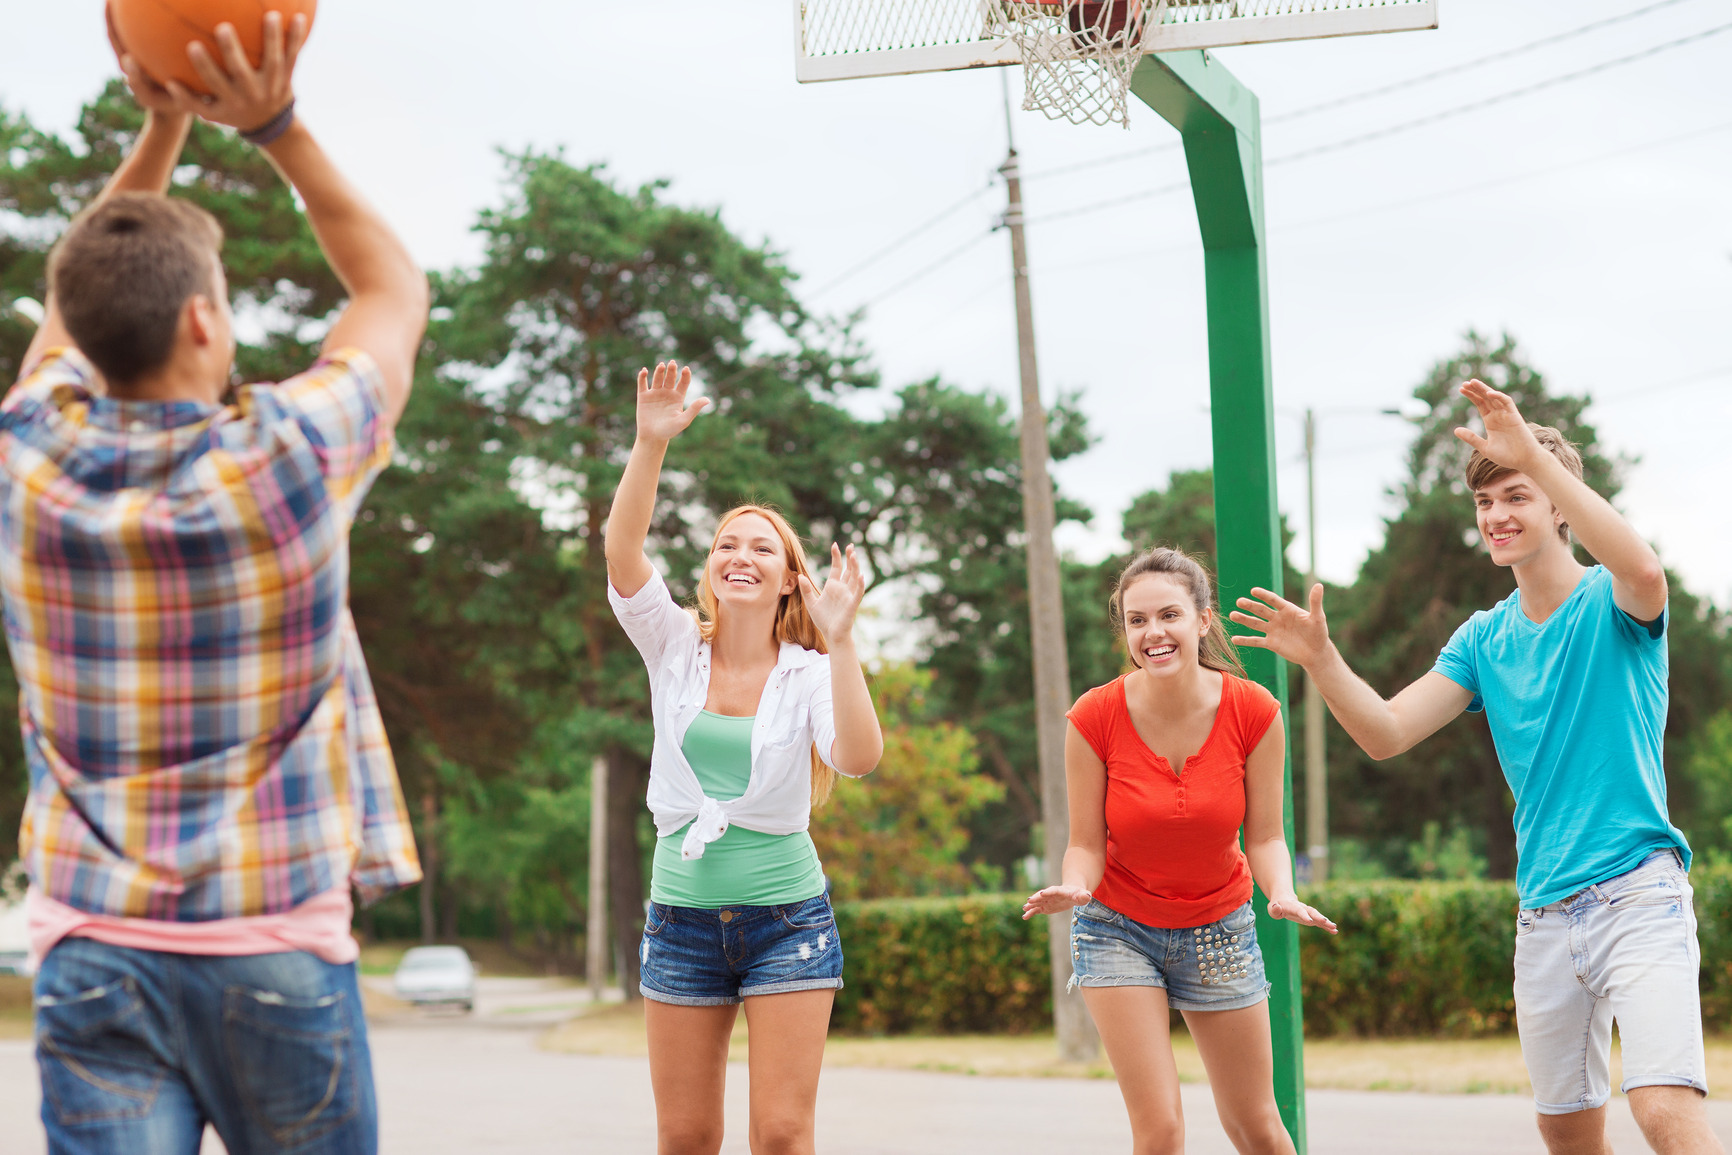 photodune-9528557-group-of-smiling-teenagers-playing-basketball-m